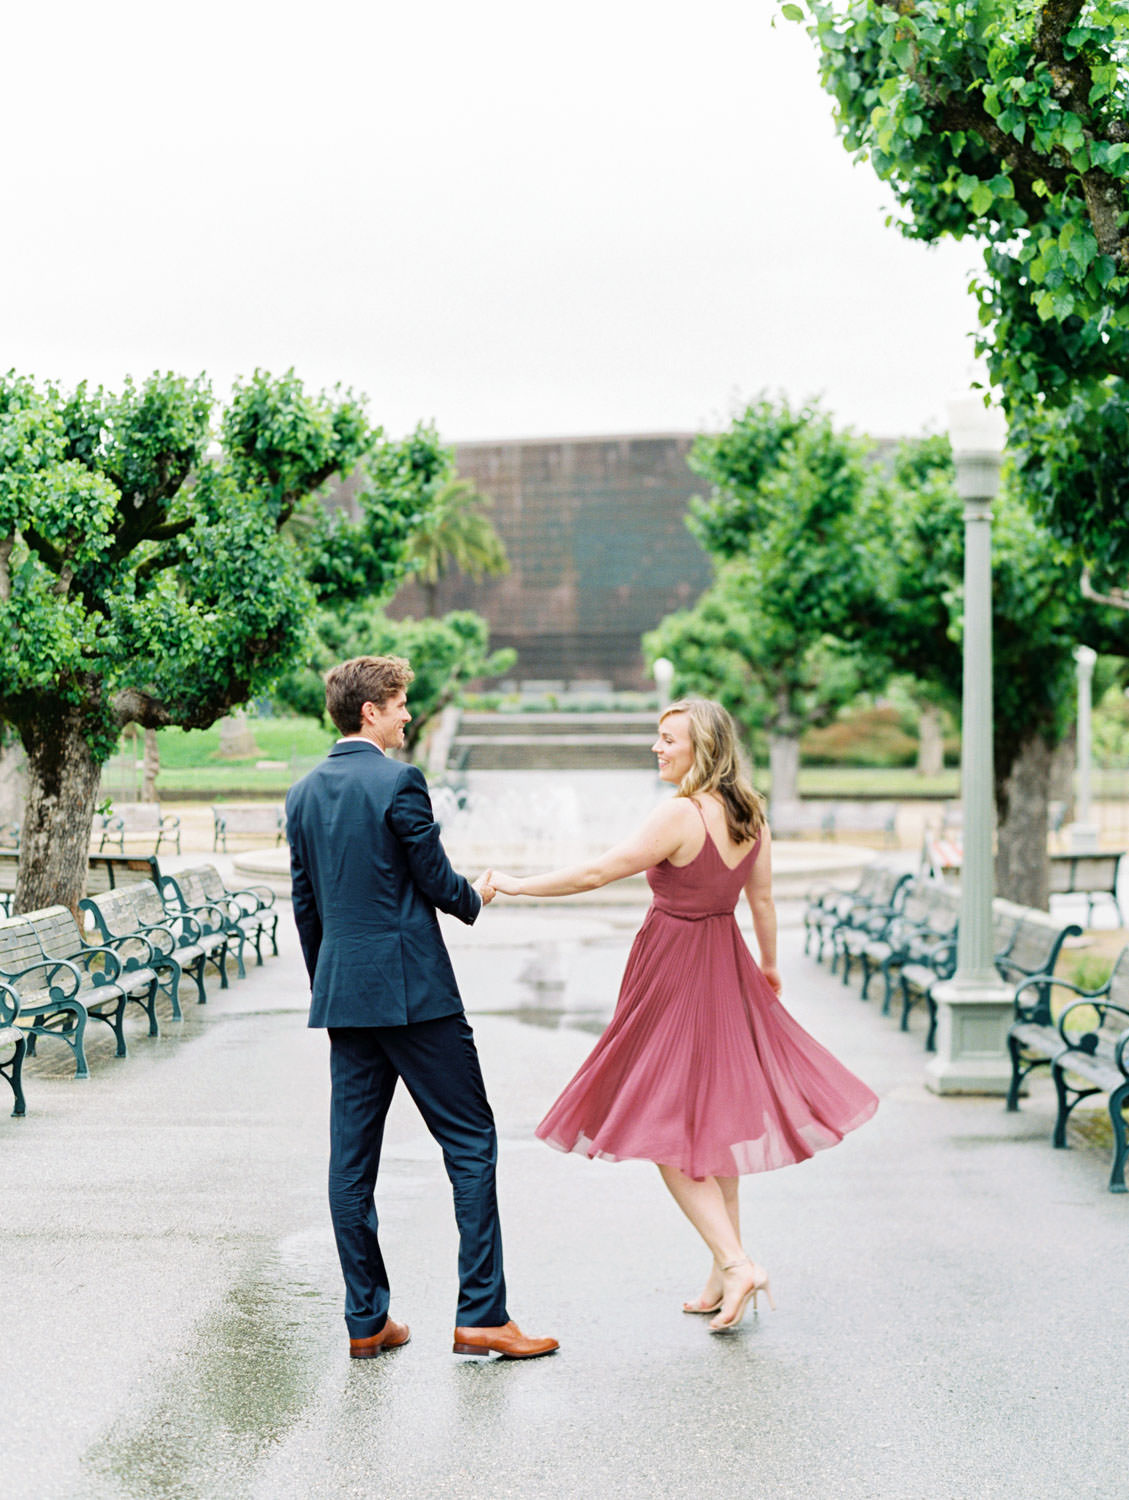 Bride in a deep mauve dress and groom in navy suit walking dancing in a park. Film Engagement Photos at Golden Gate Park by Cavin Elizabeth